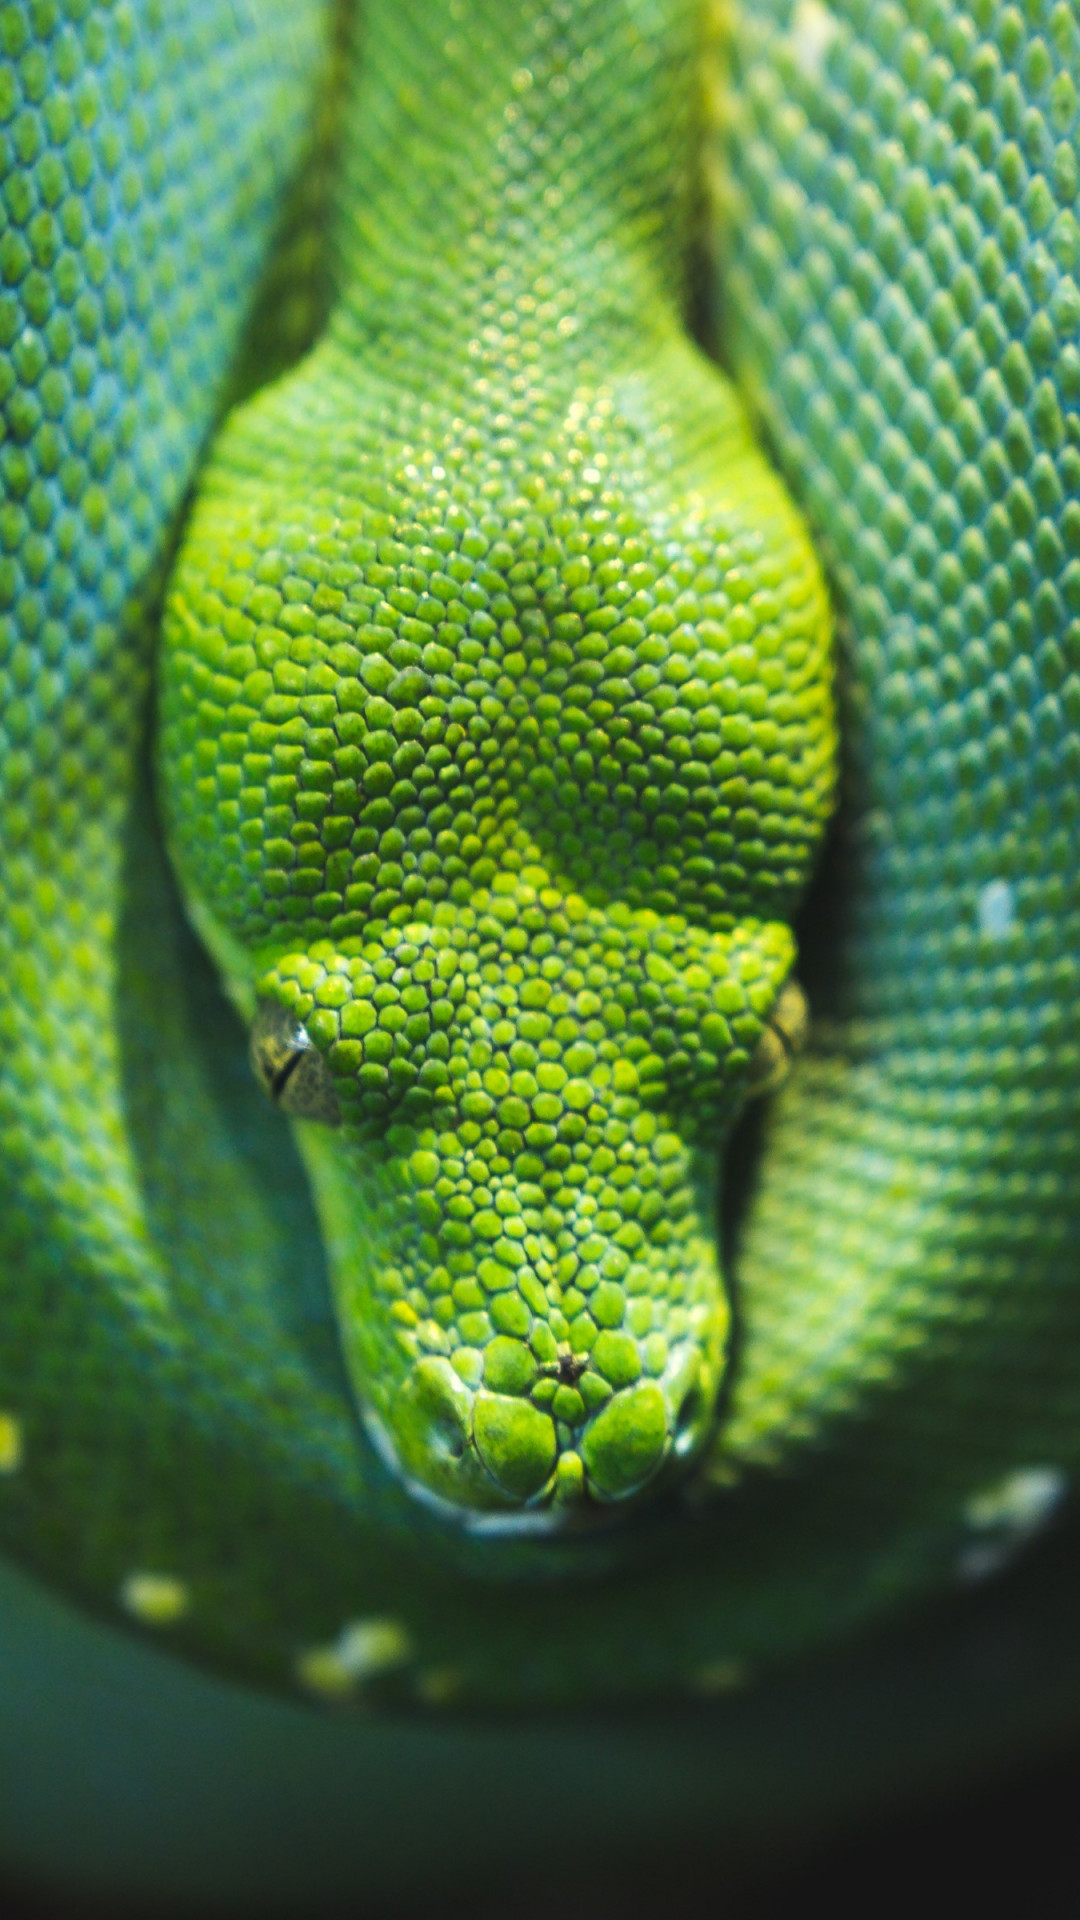 Green Tree snake python wallpaper 1080x1920